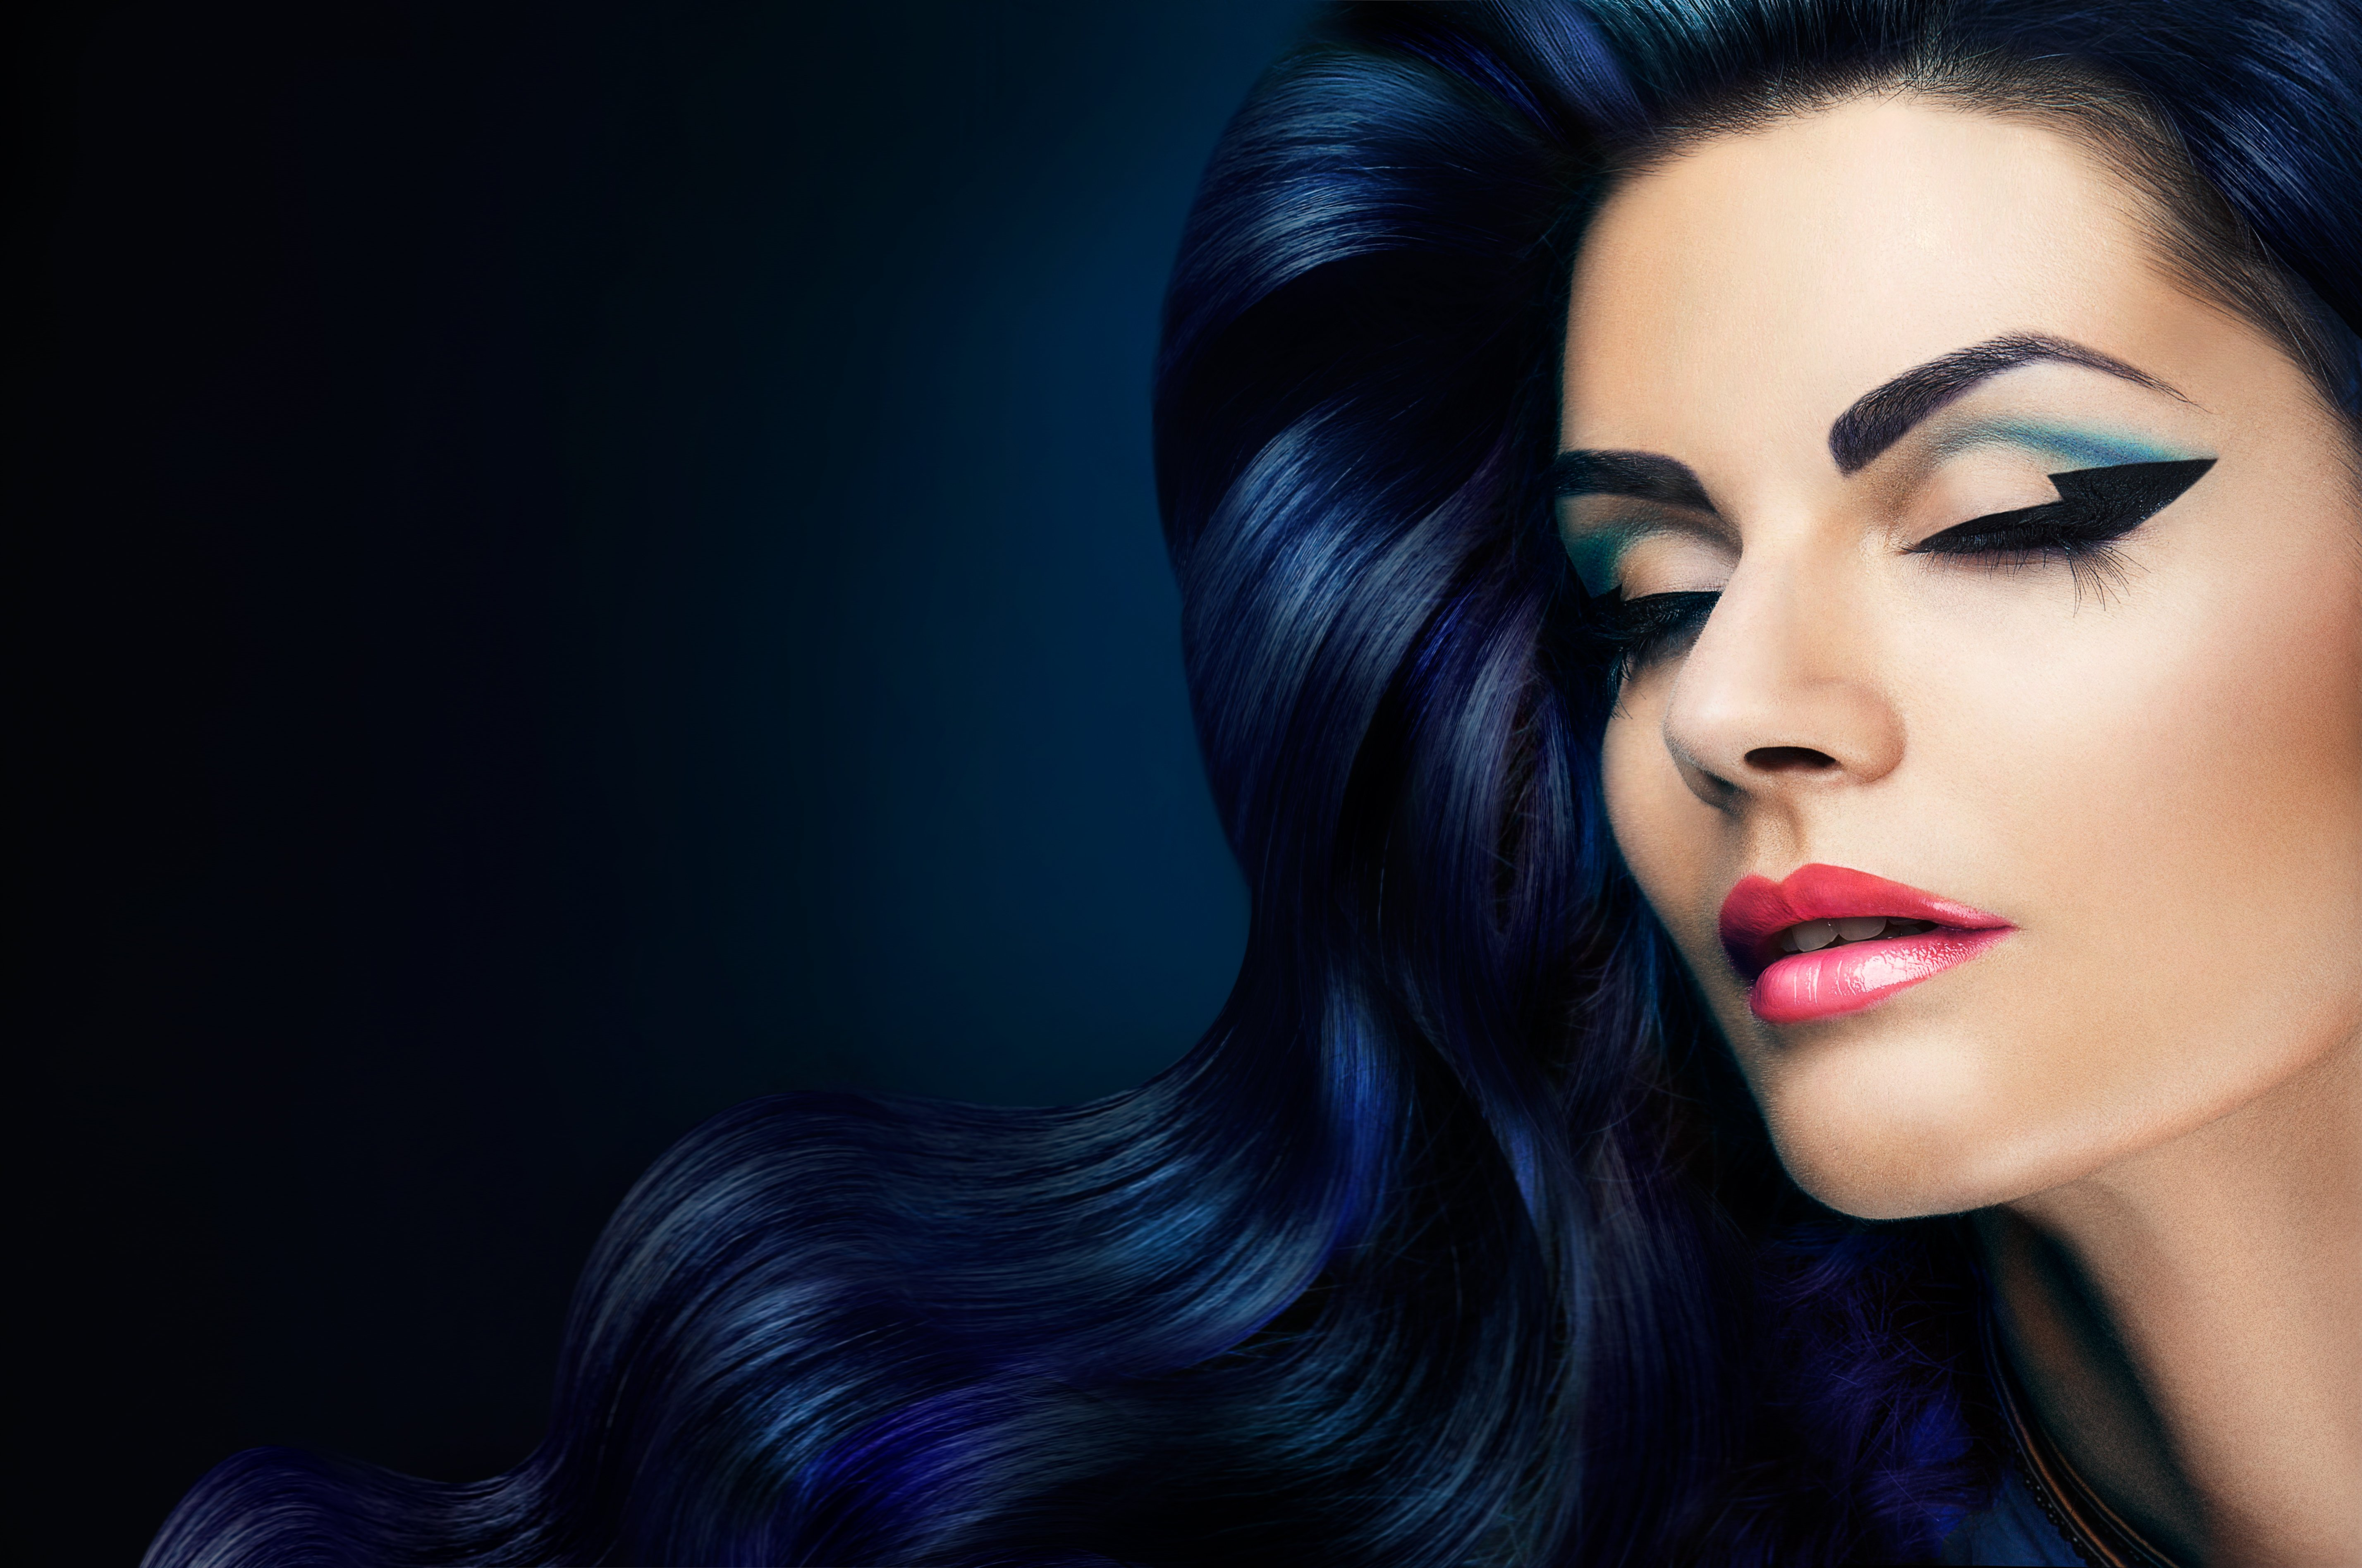 Girl Attractive Blue Black Make Up Lips Wallpaper